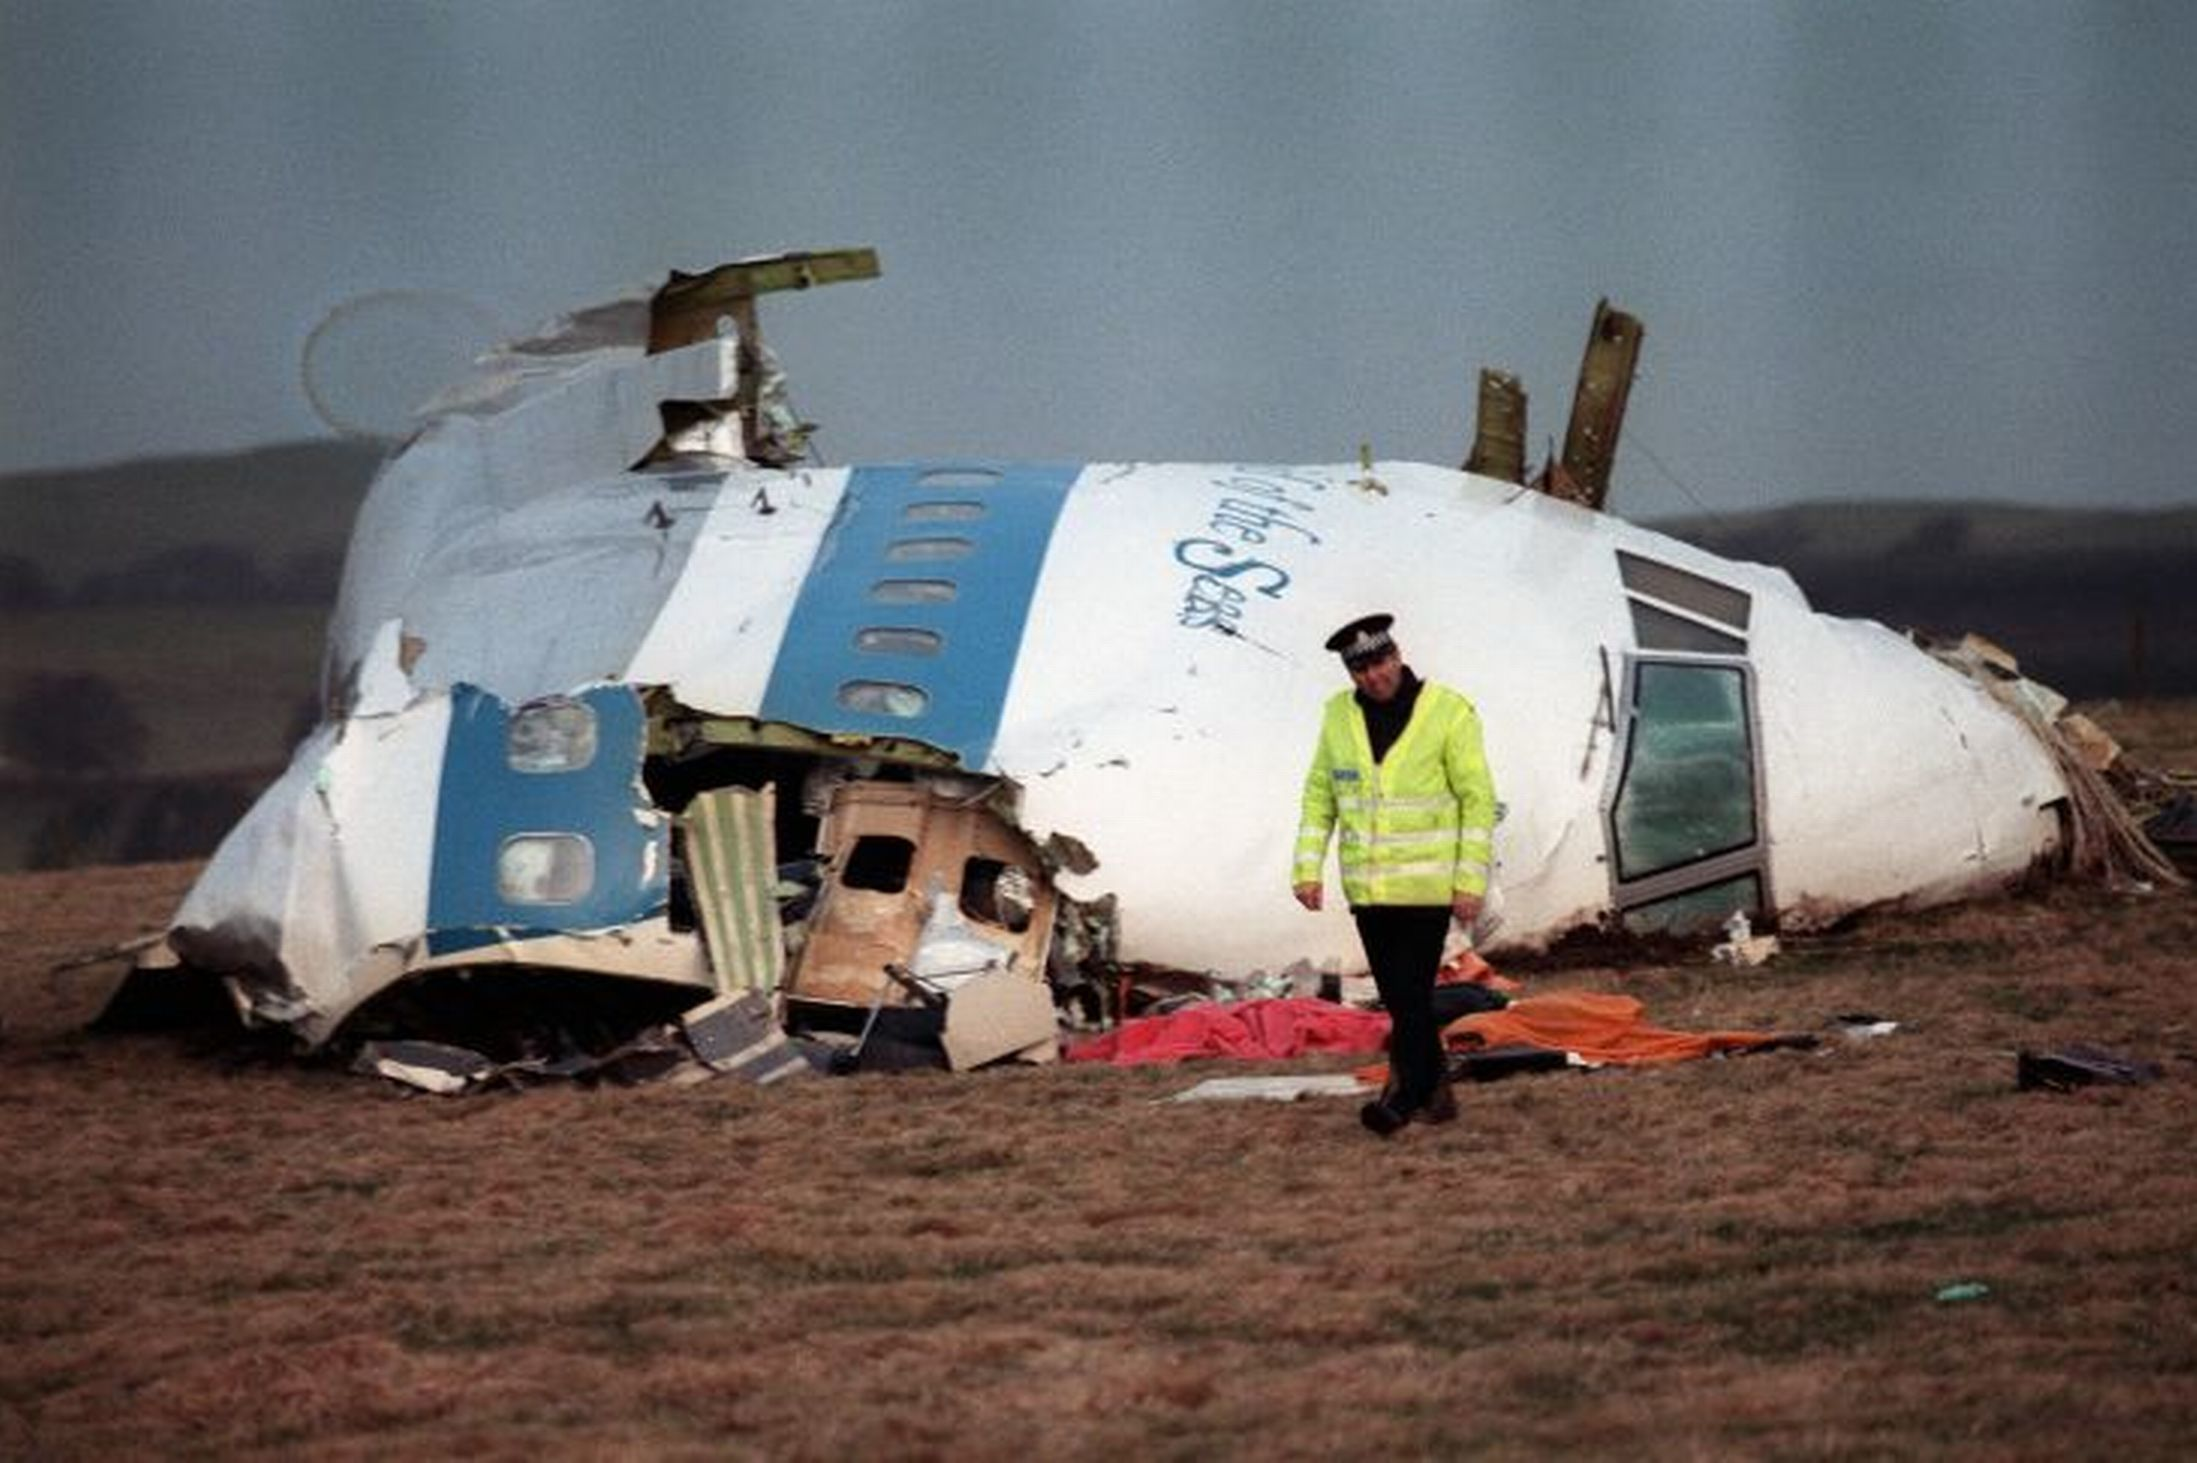 270 people were killed in the Lockerbie bombing